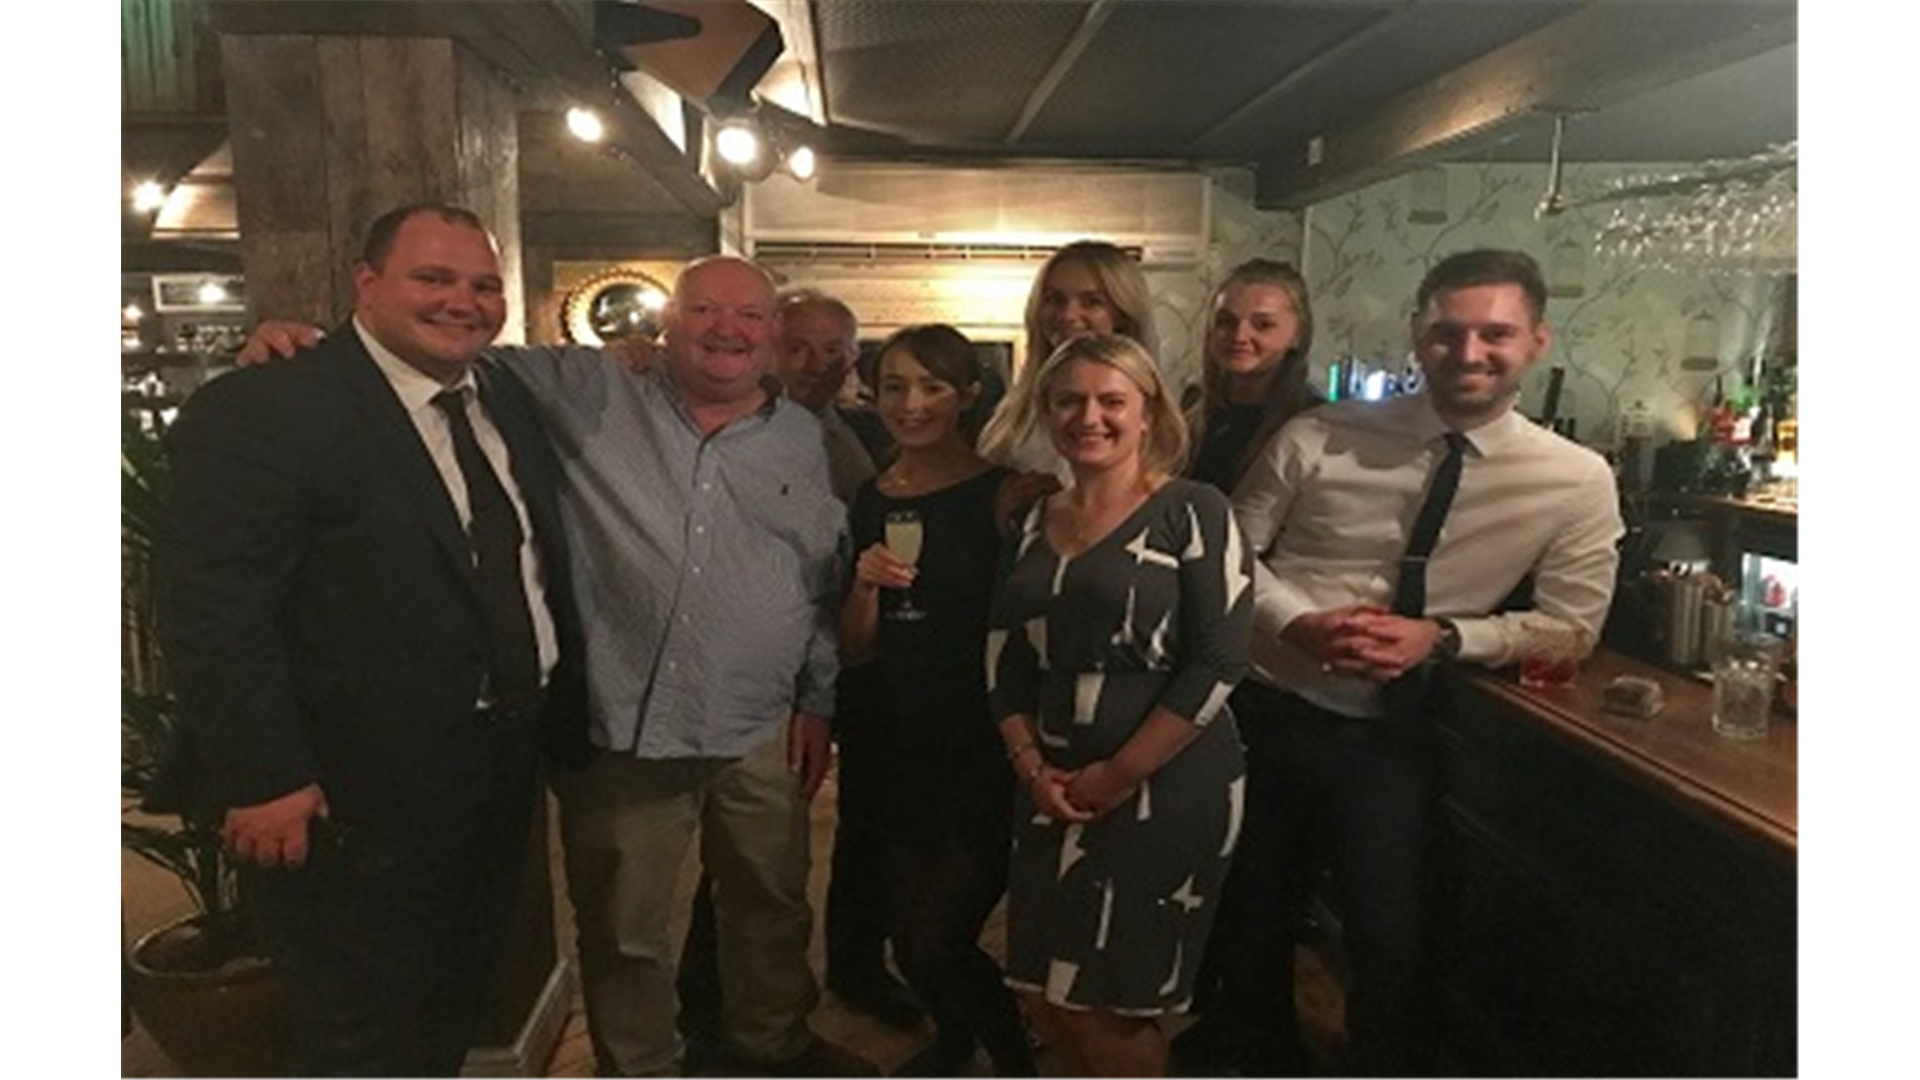 Langtons No. 1 Gin & Sacco Mann Event – Newcastle